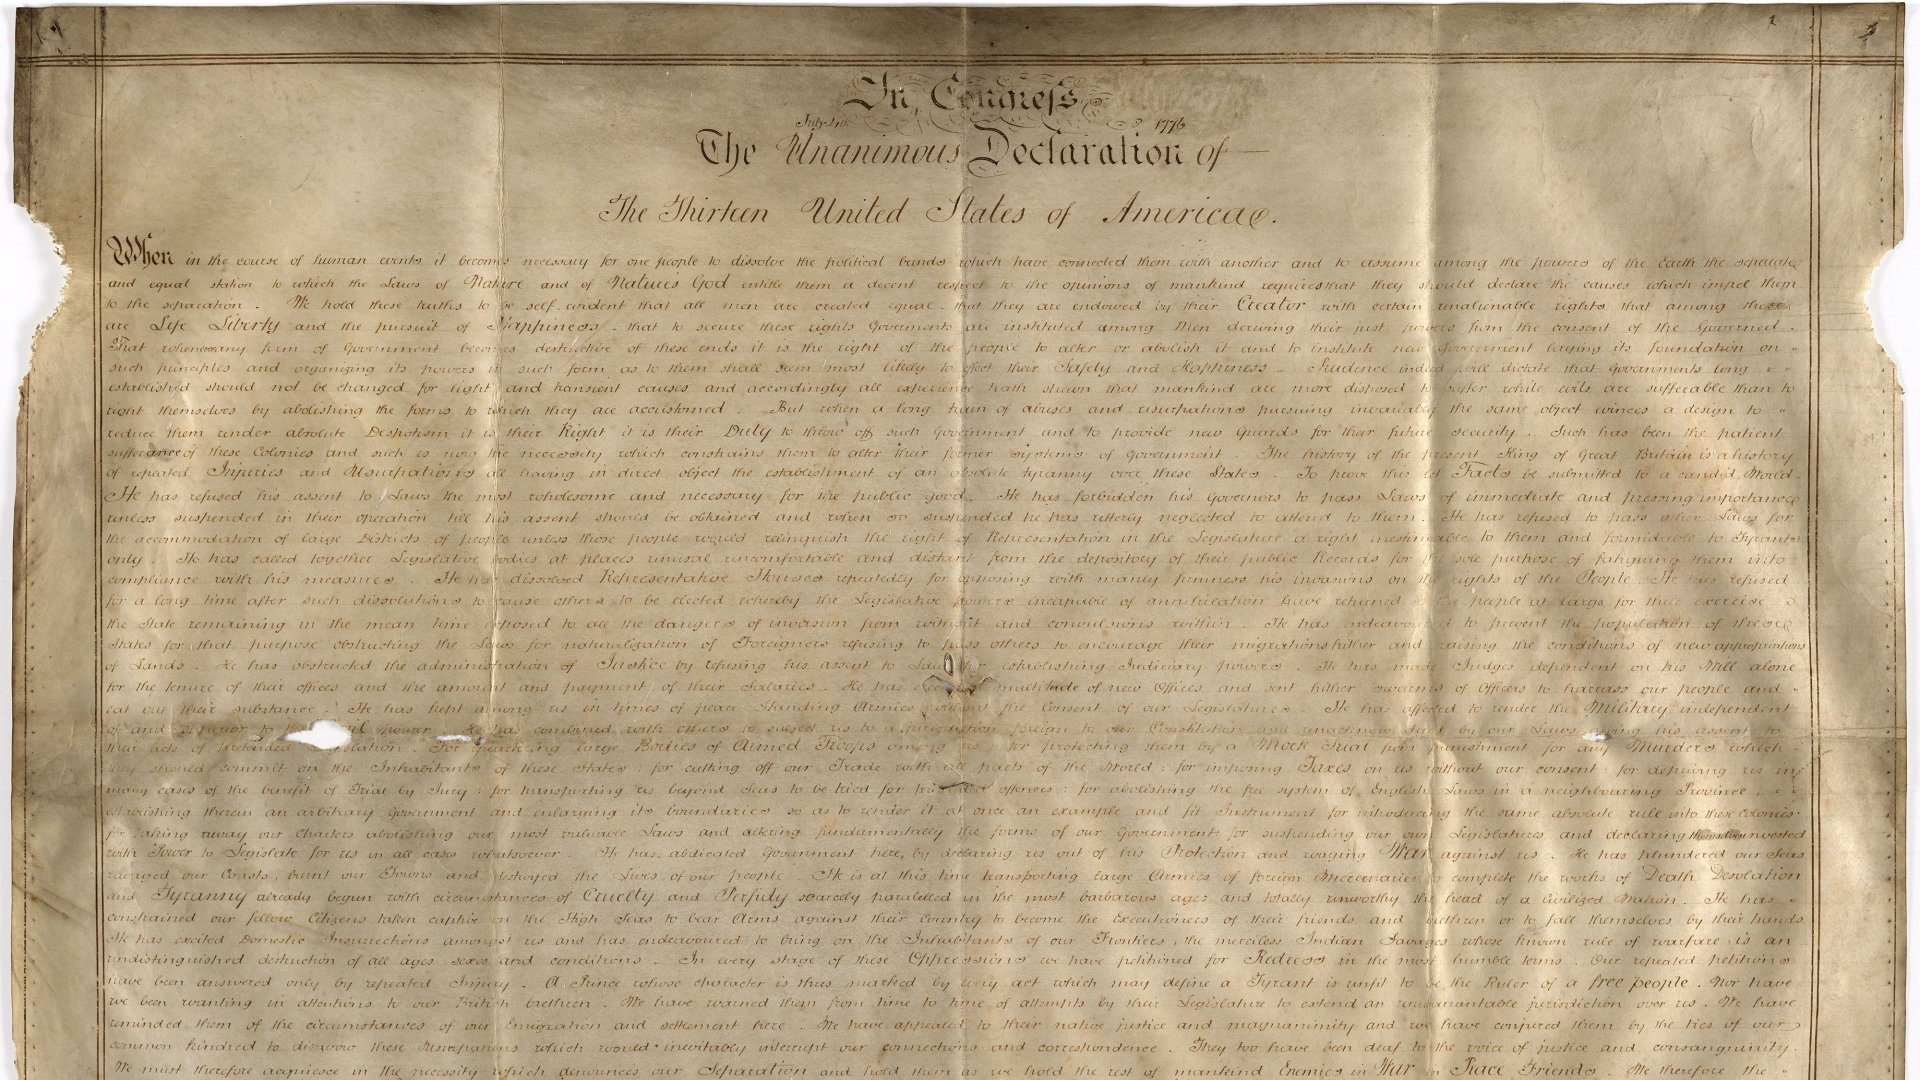 The Sussex Declaration. (Credit: West Sussex Add Mss 8981)